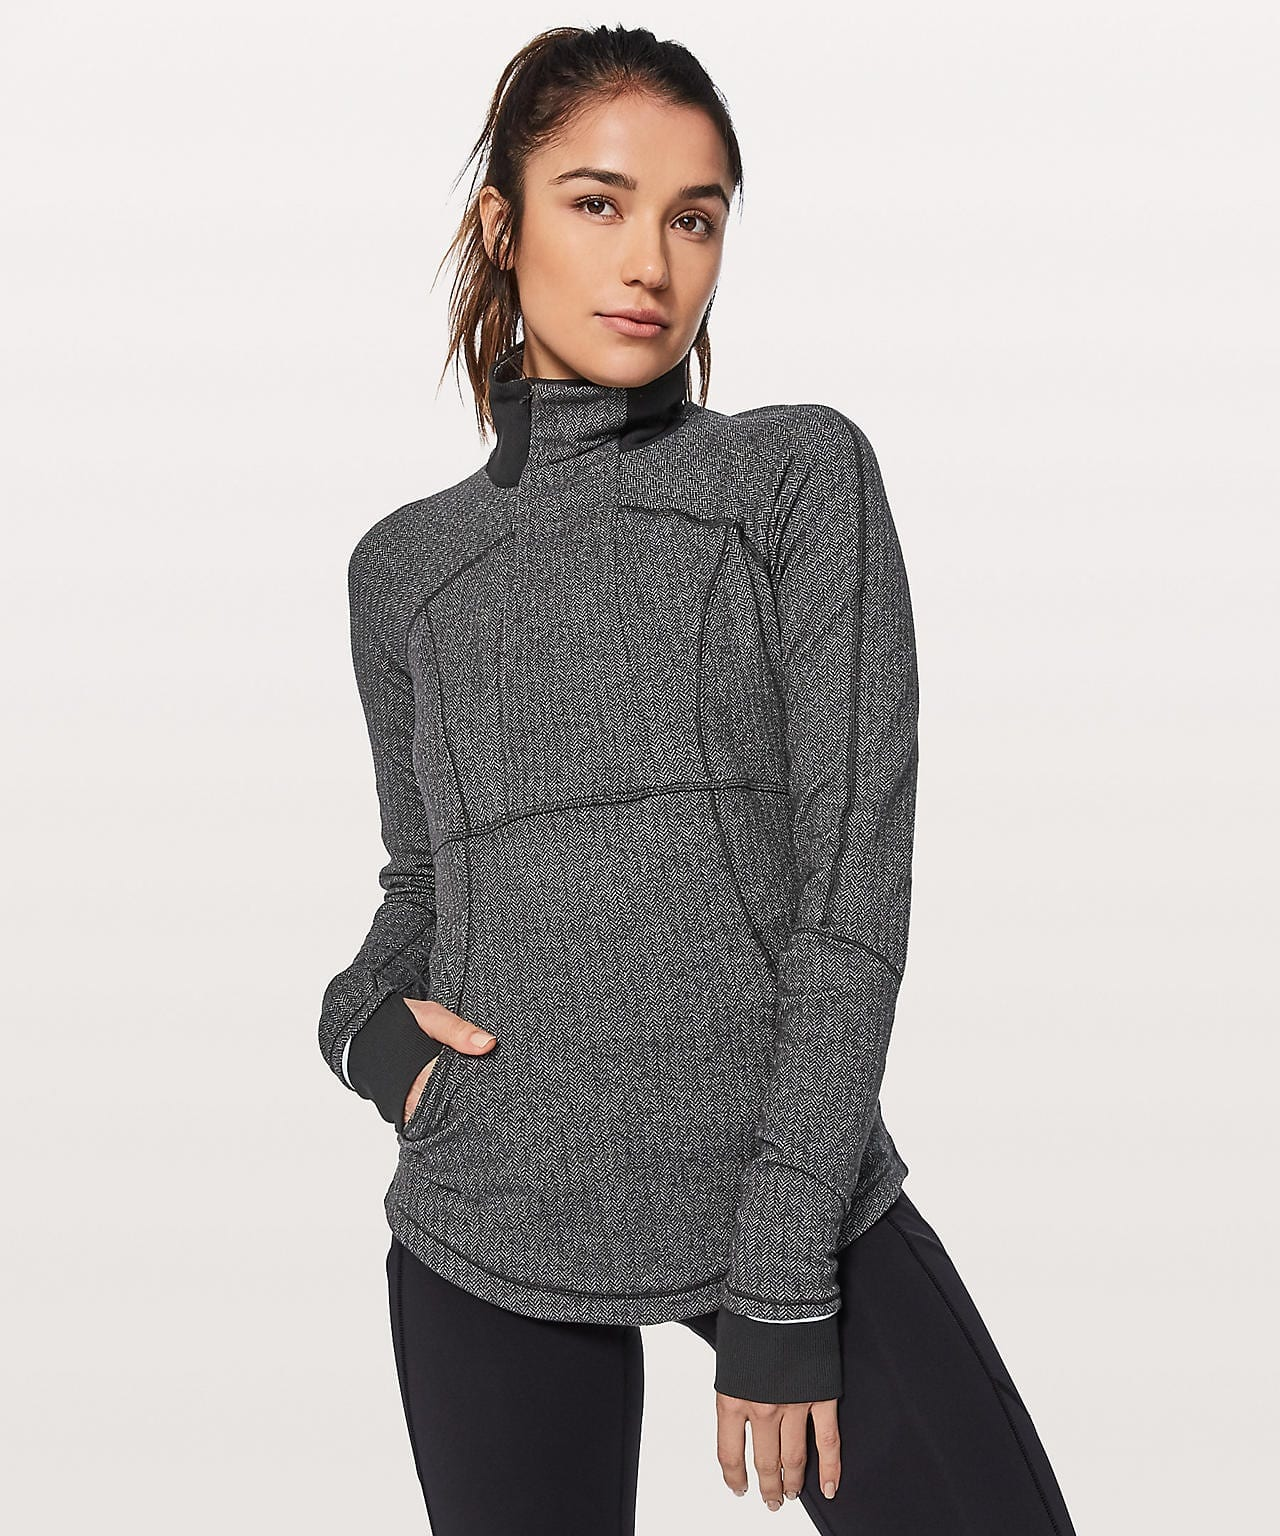 Lululemon Base Runner 1/2 Zip